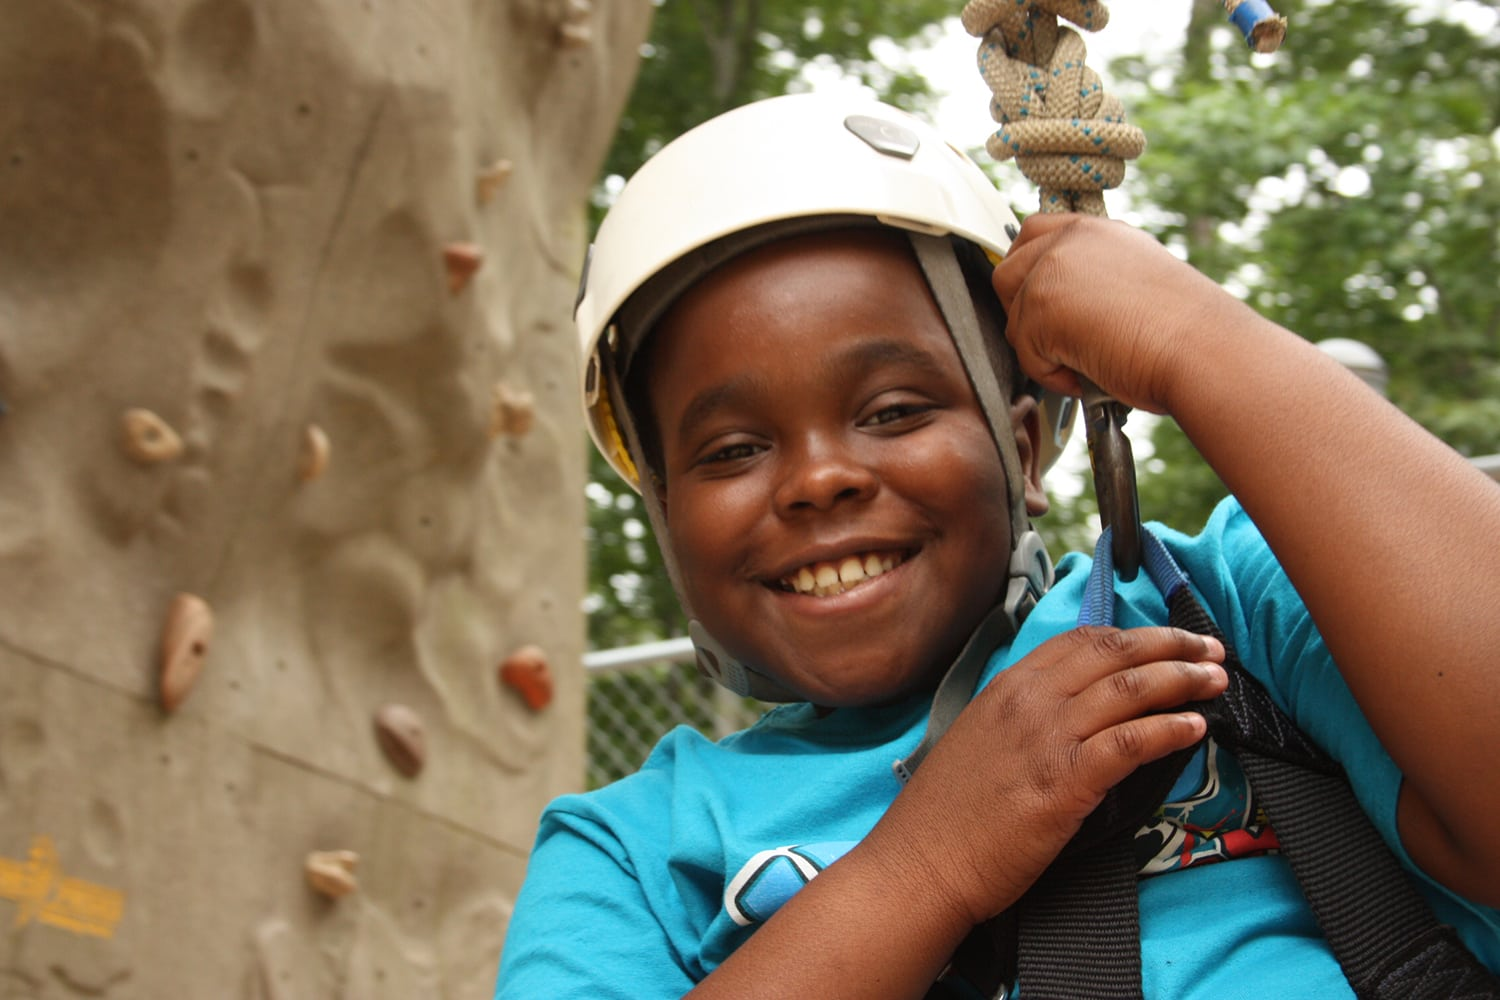 4-H member on climbing wall